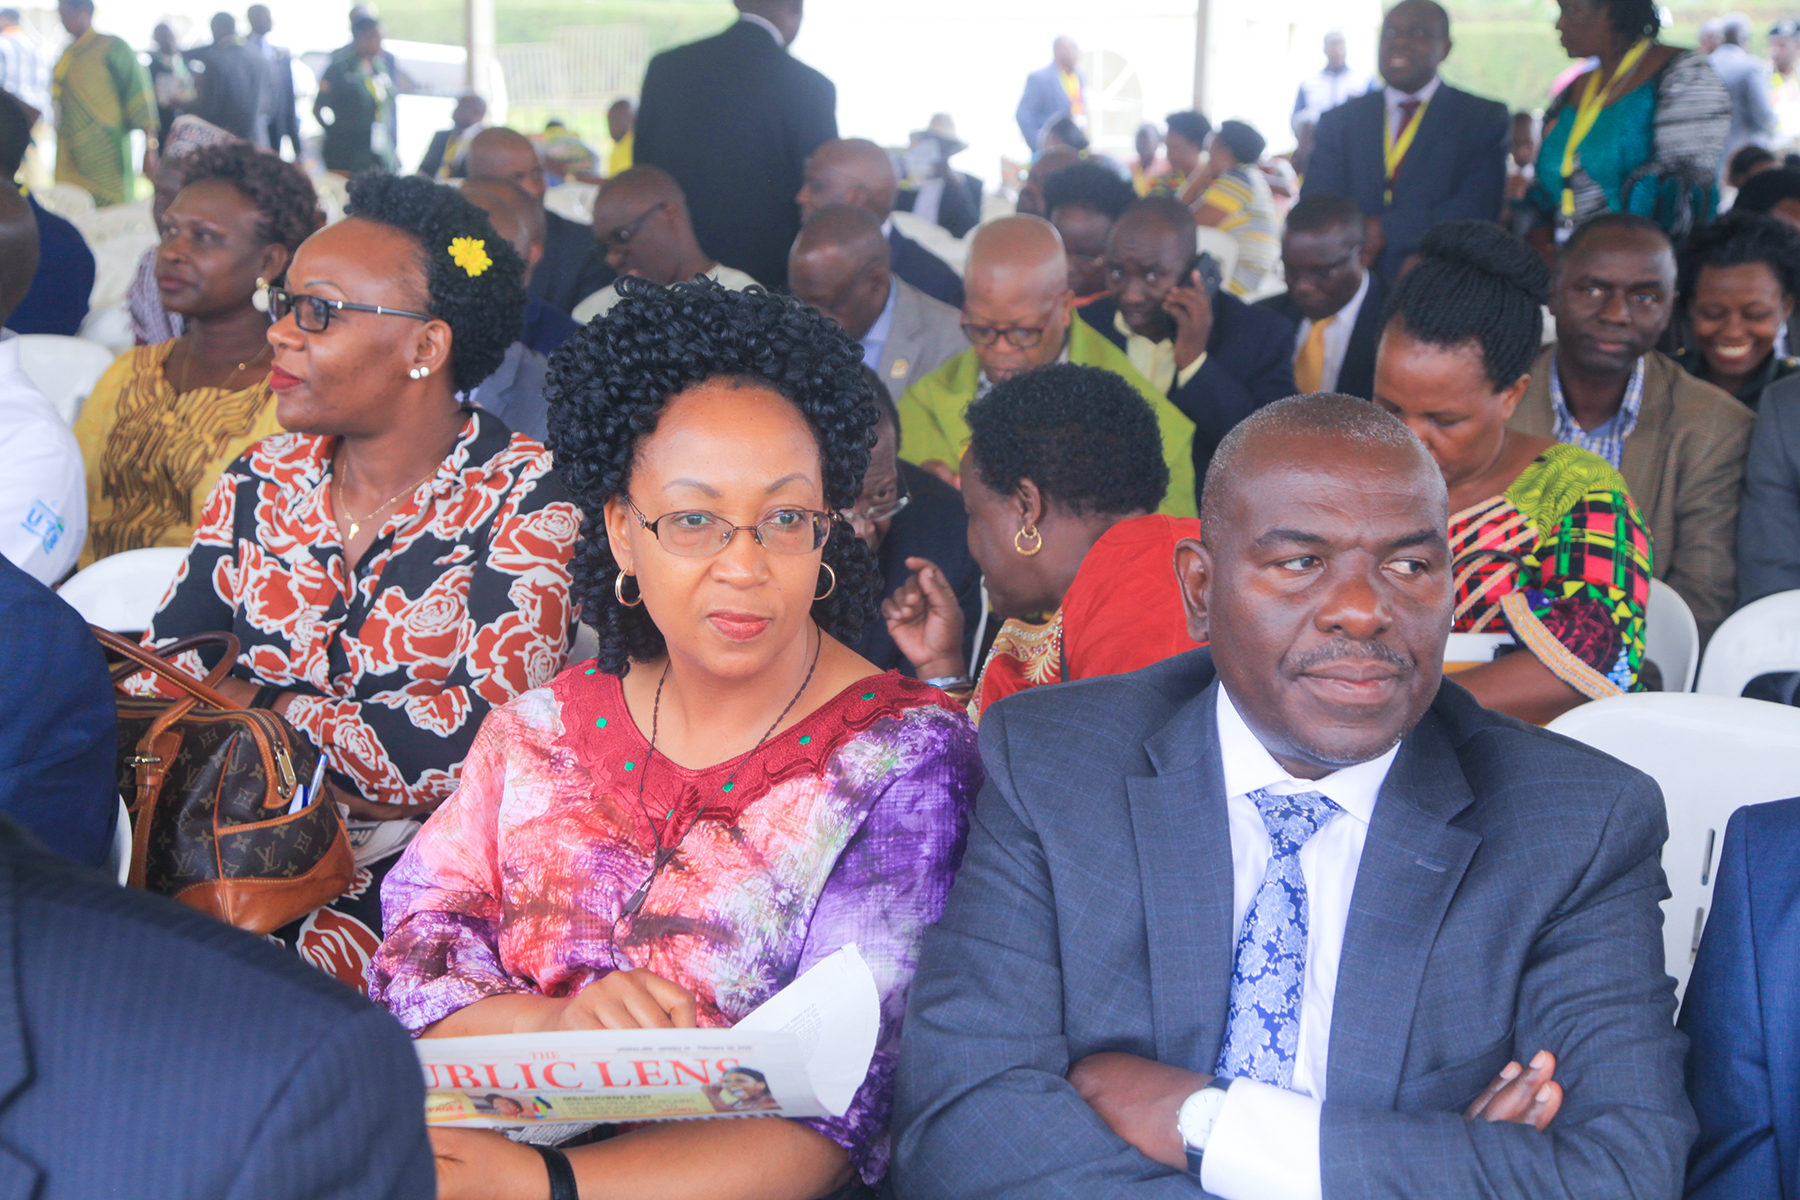 PERMANENT SECRETARY CATHERINE BITARAKWATE MUSINGWIIRE AND COMMISSIONER PLANNING, MONITORING AND EVALUATION EDWARD FREDRICK WALUGEMBE ATTENDS 34TH NRM DAY CELEBRATIONS AT IBANDA DISTRICT